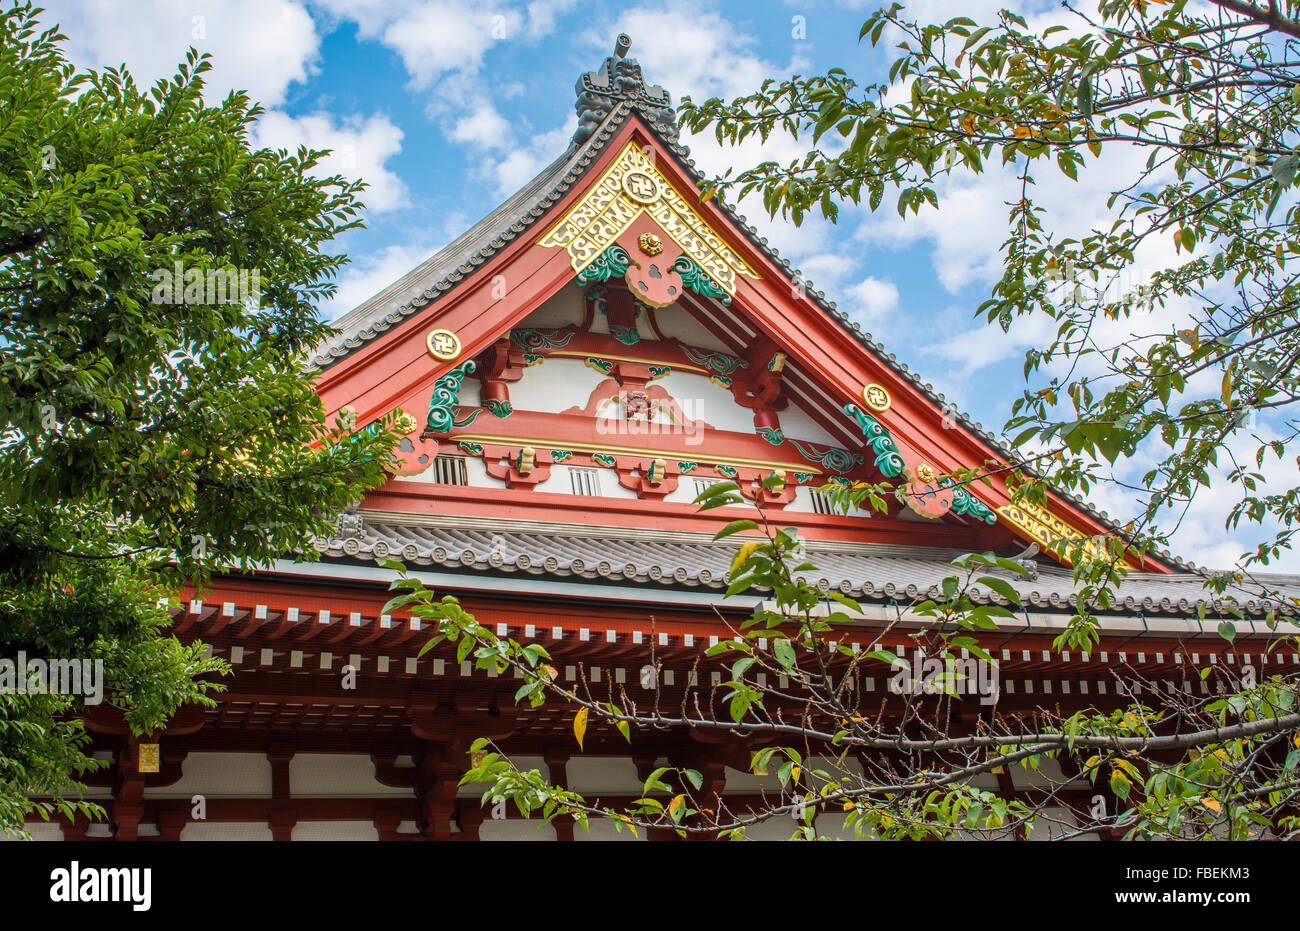 Tokyo Japan Sensoji Temple at Tokyo's oldest temple and important built in 645 founded - Stock Image